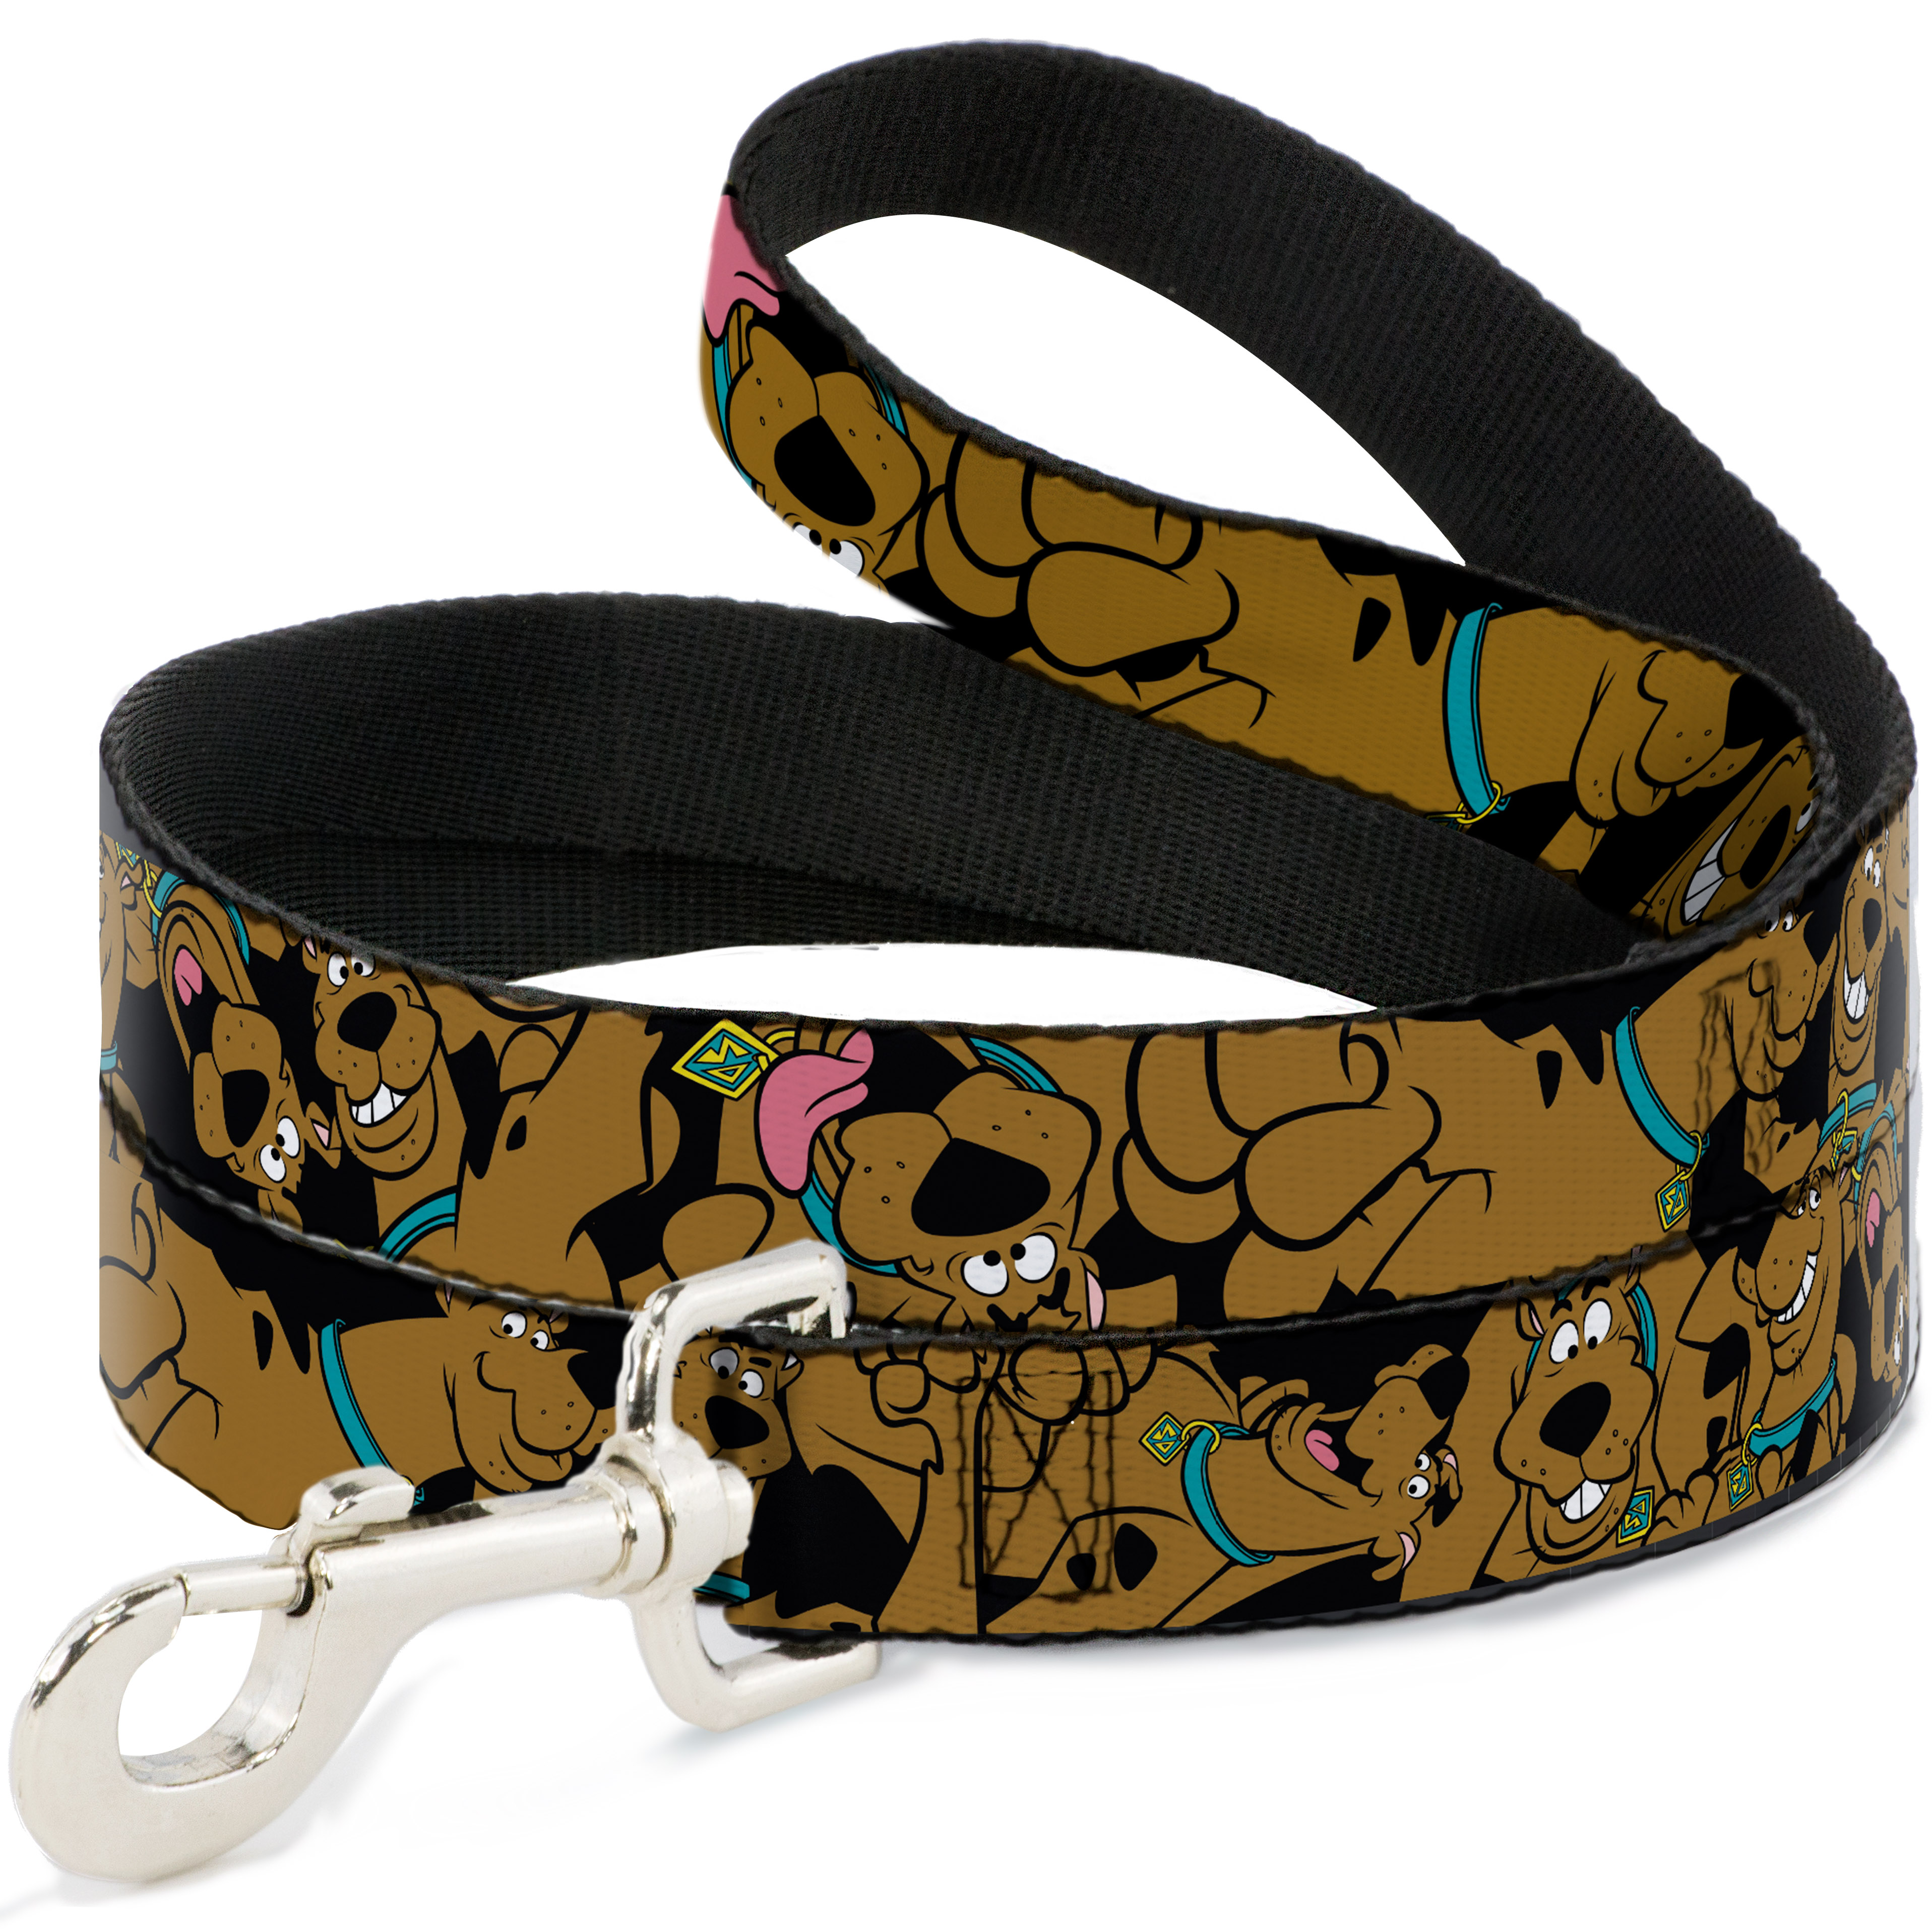 Scooby Doo Comedy Cartoon Series TV Show Scooby Collage Pet Leash